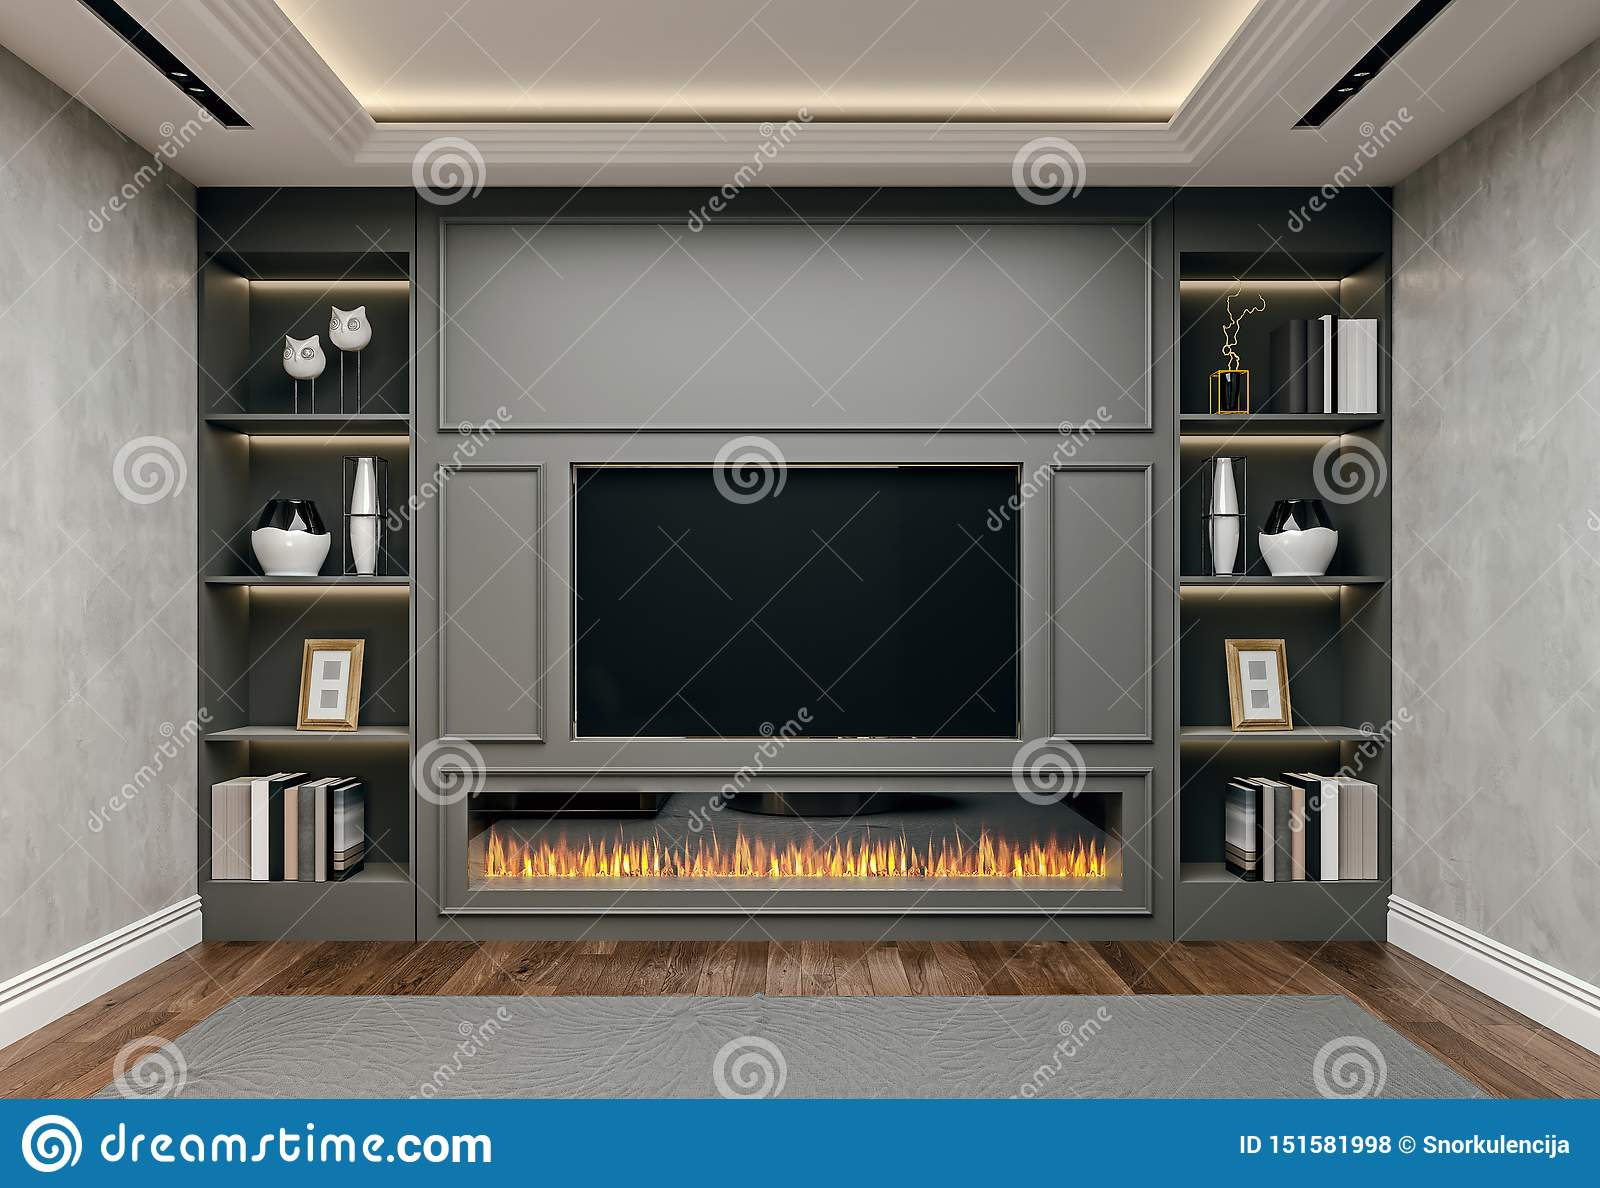 Modern Interior Design Of Living Room In Basement Close Up View Of Tv Wall With Book Shelves Stucco Plaster Stock Illustration Illustration Of Flowers Contemporary 151581998